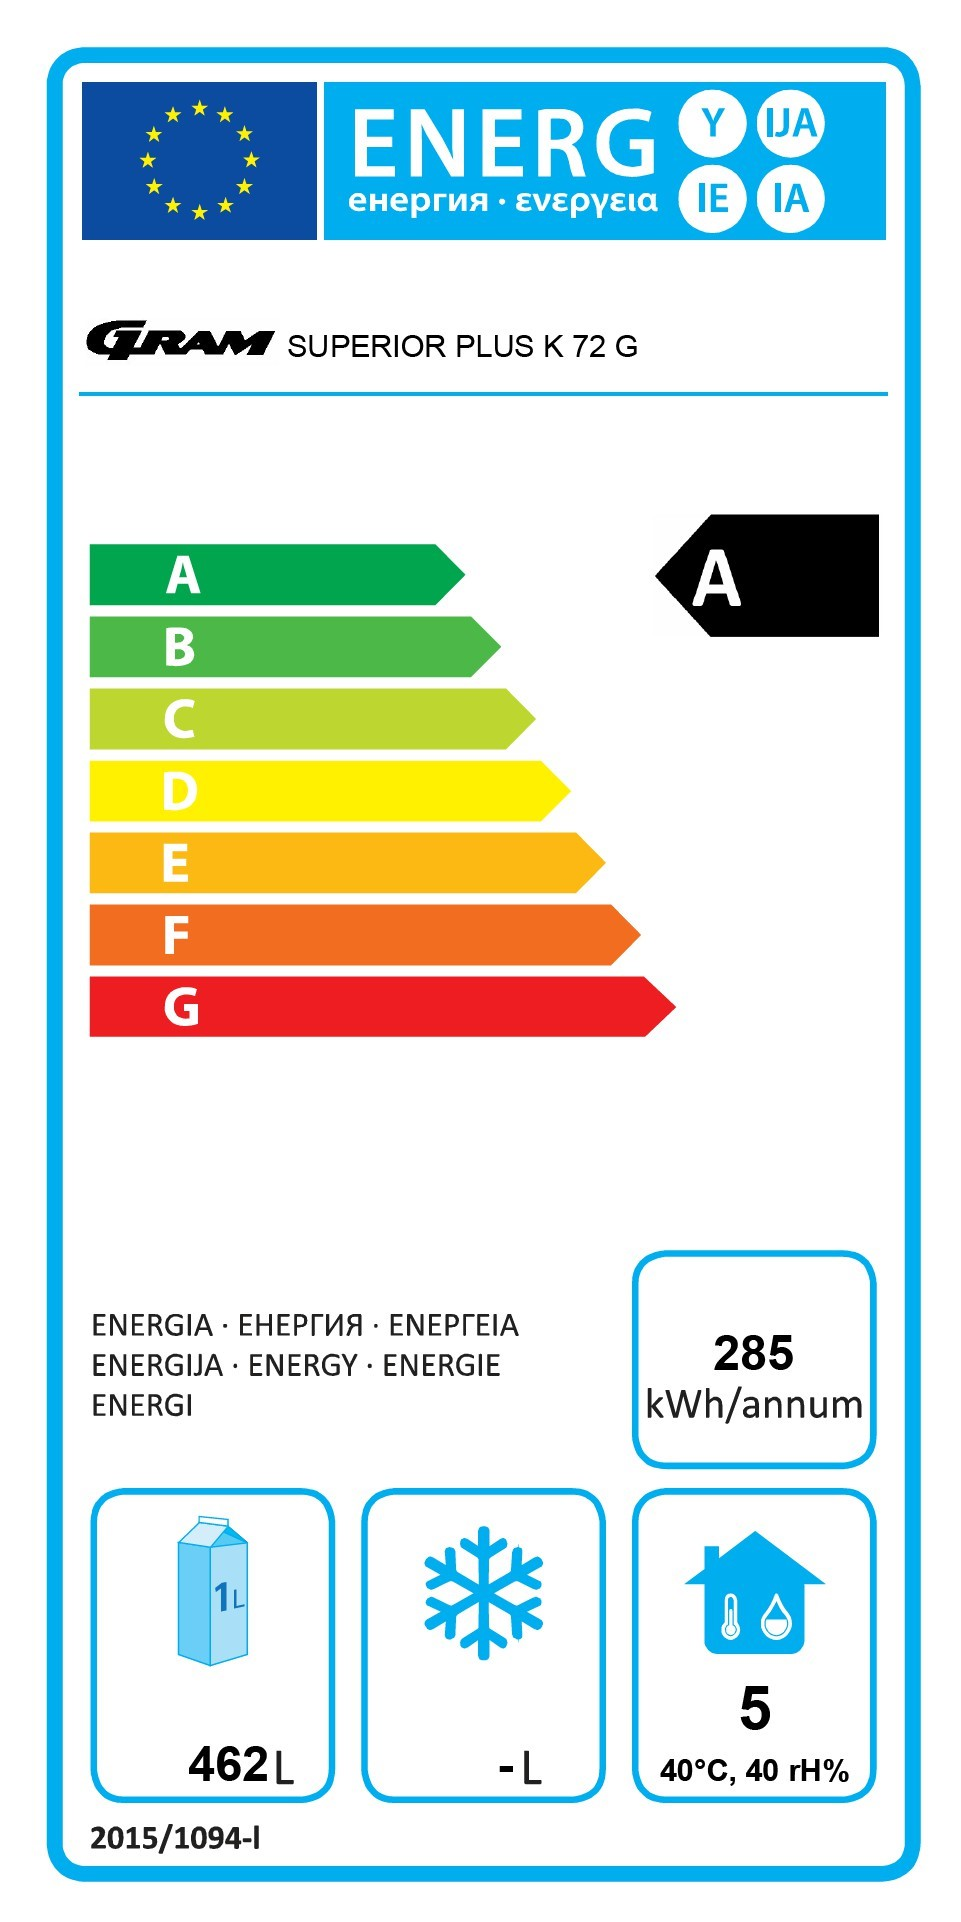 SUPERIOR PLUS K 72 RAG C1 4S 610 Ltr Upright Fridge Energy Rating